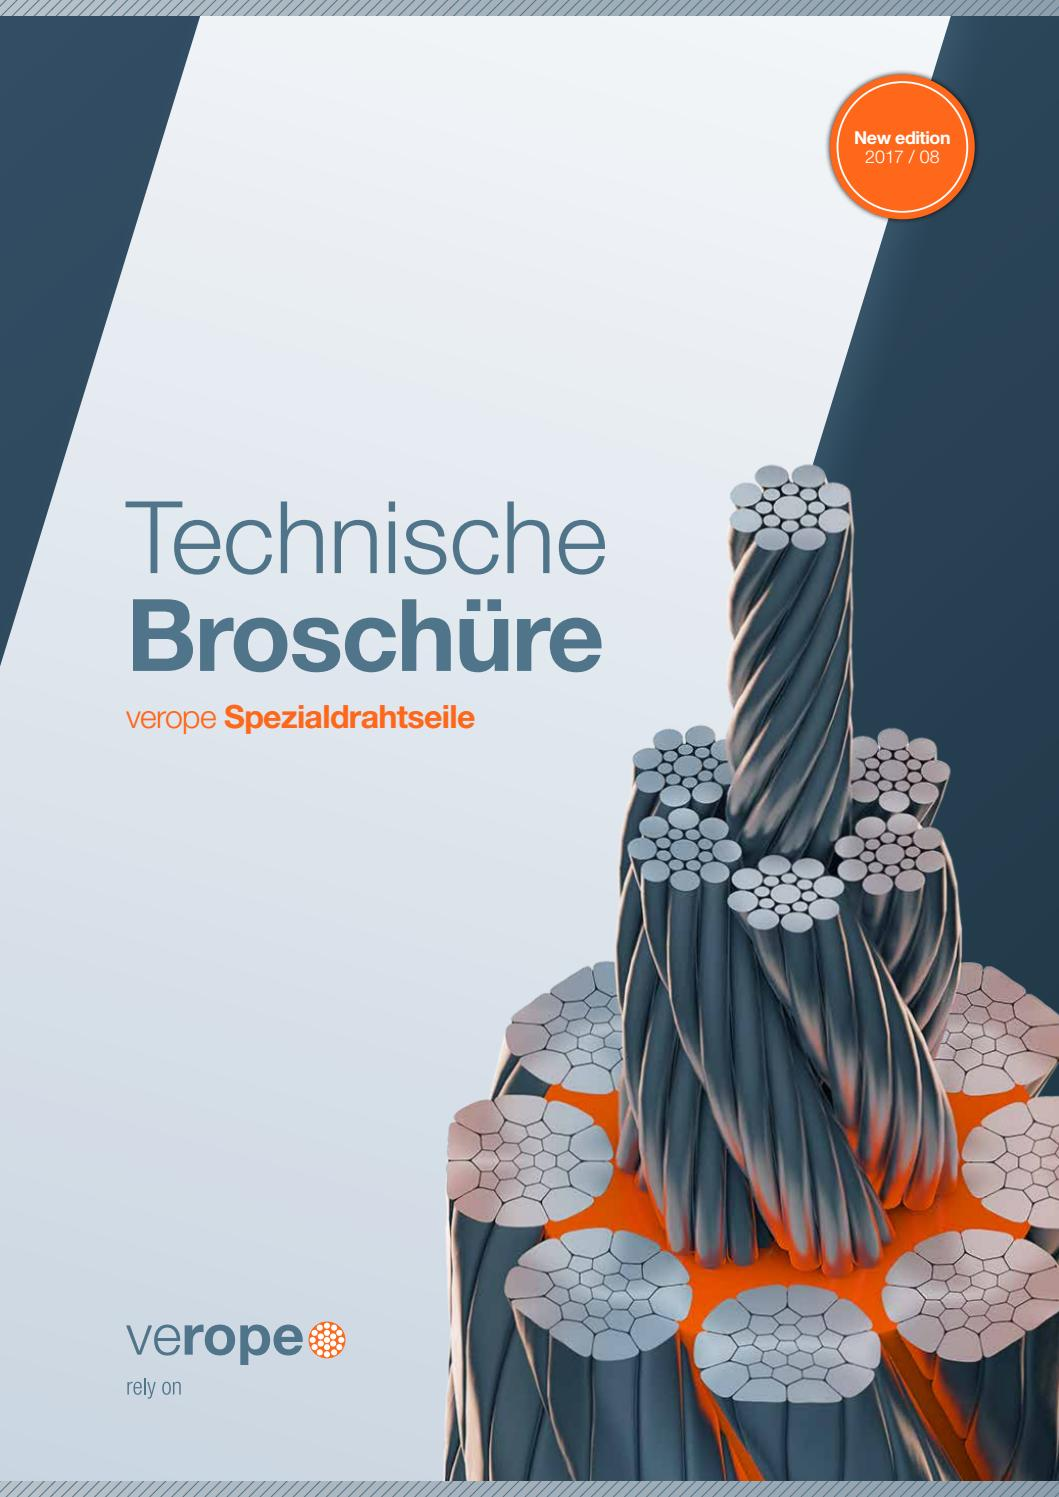 170727 technical brochure verope de by verope AG - issuu